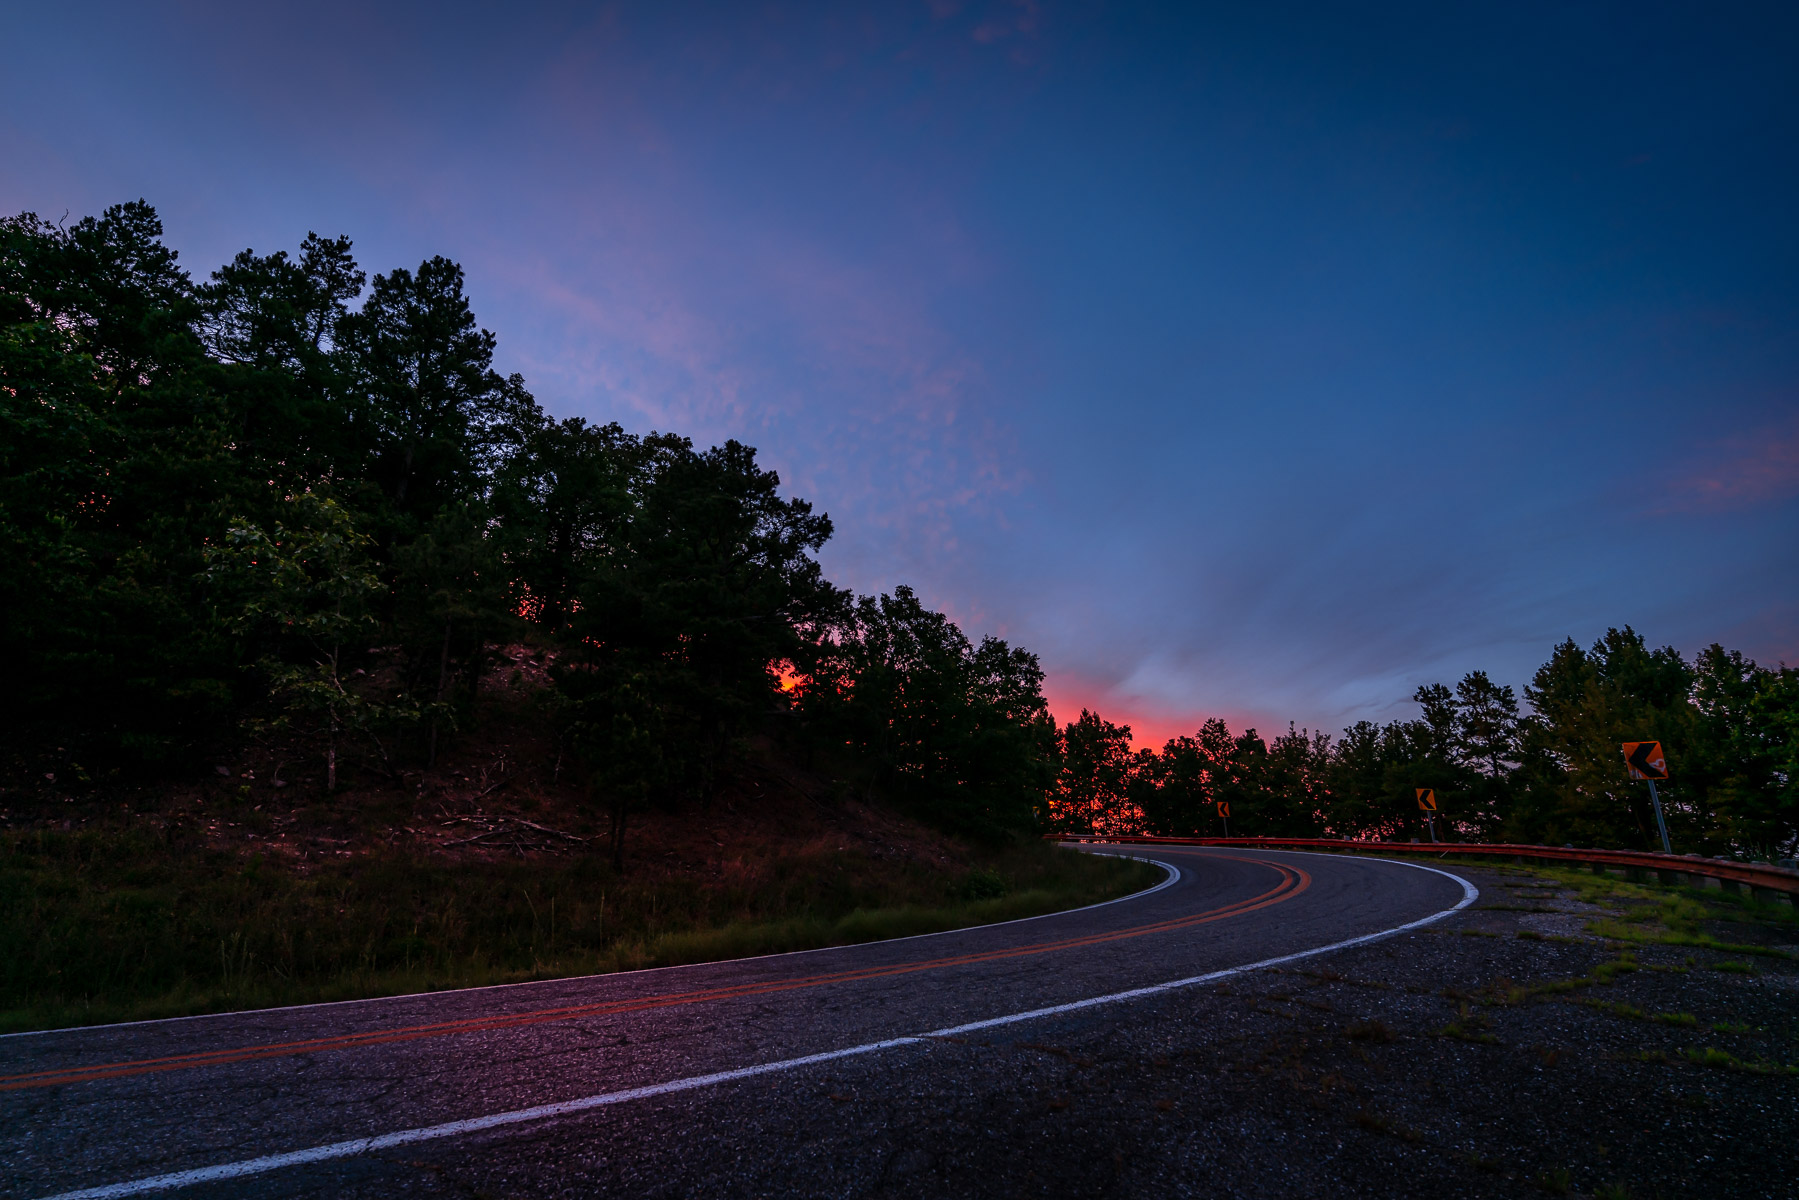 The Talimena National Scenic Byway twists through the Ouachita National Forest towards the setting sun near Mena, Arkansas.